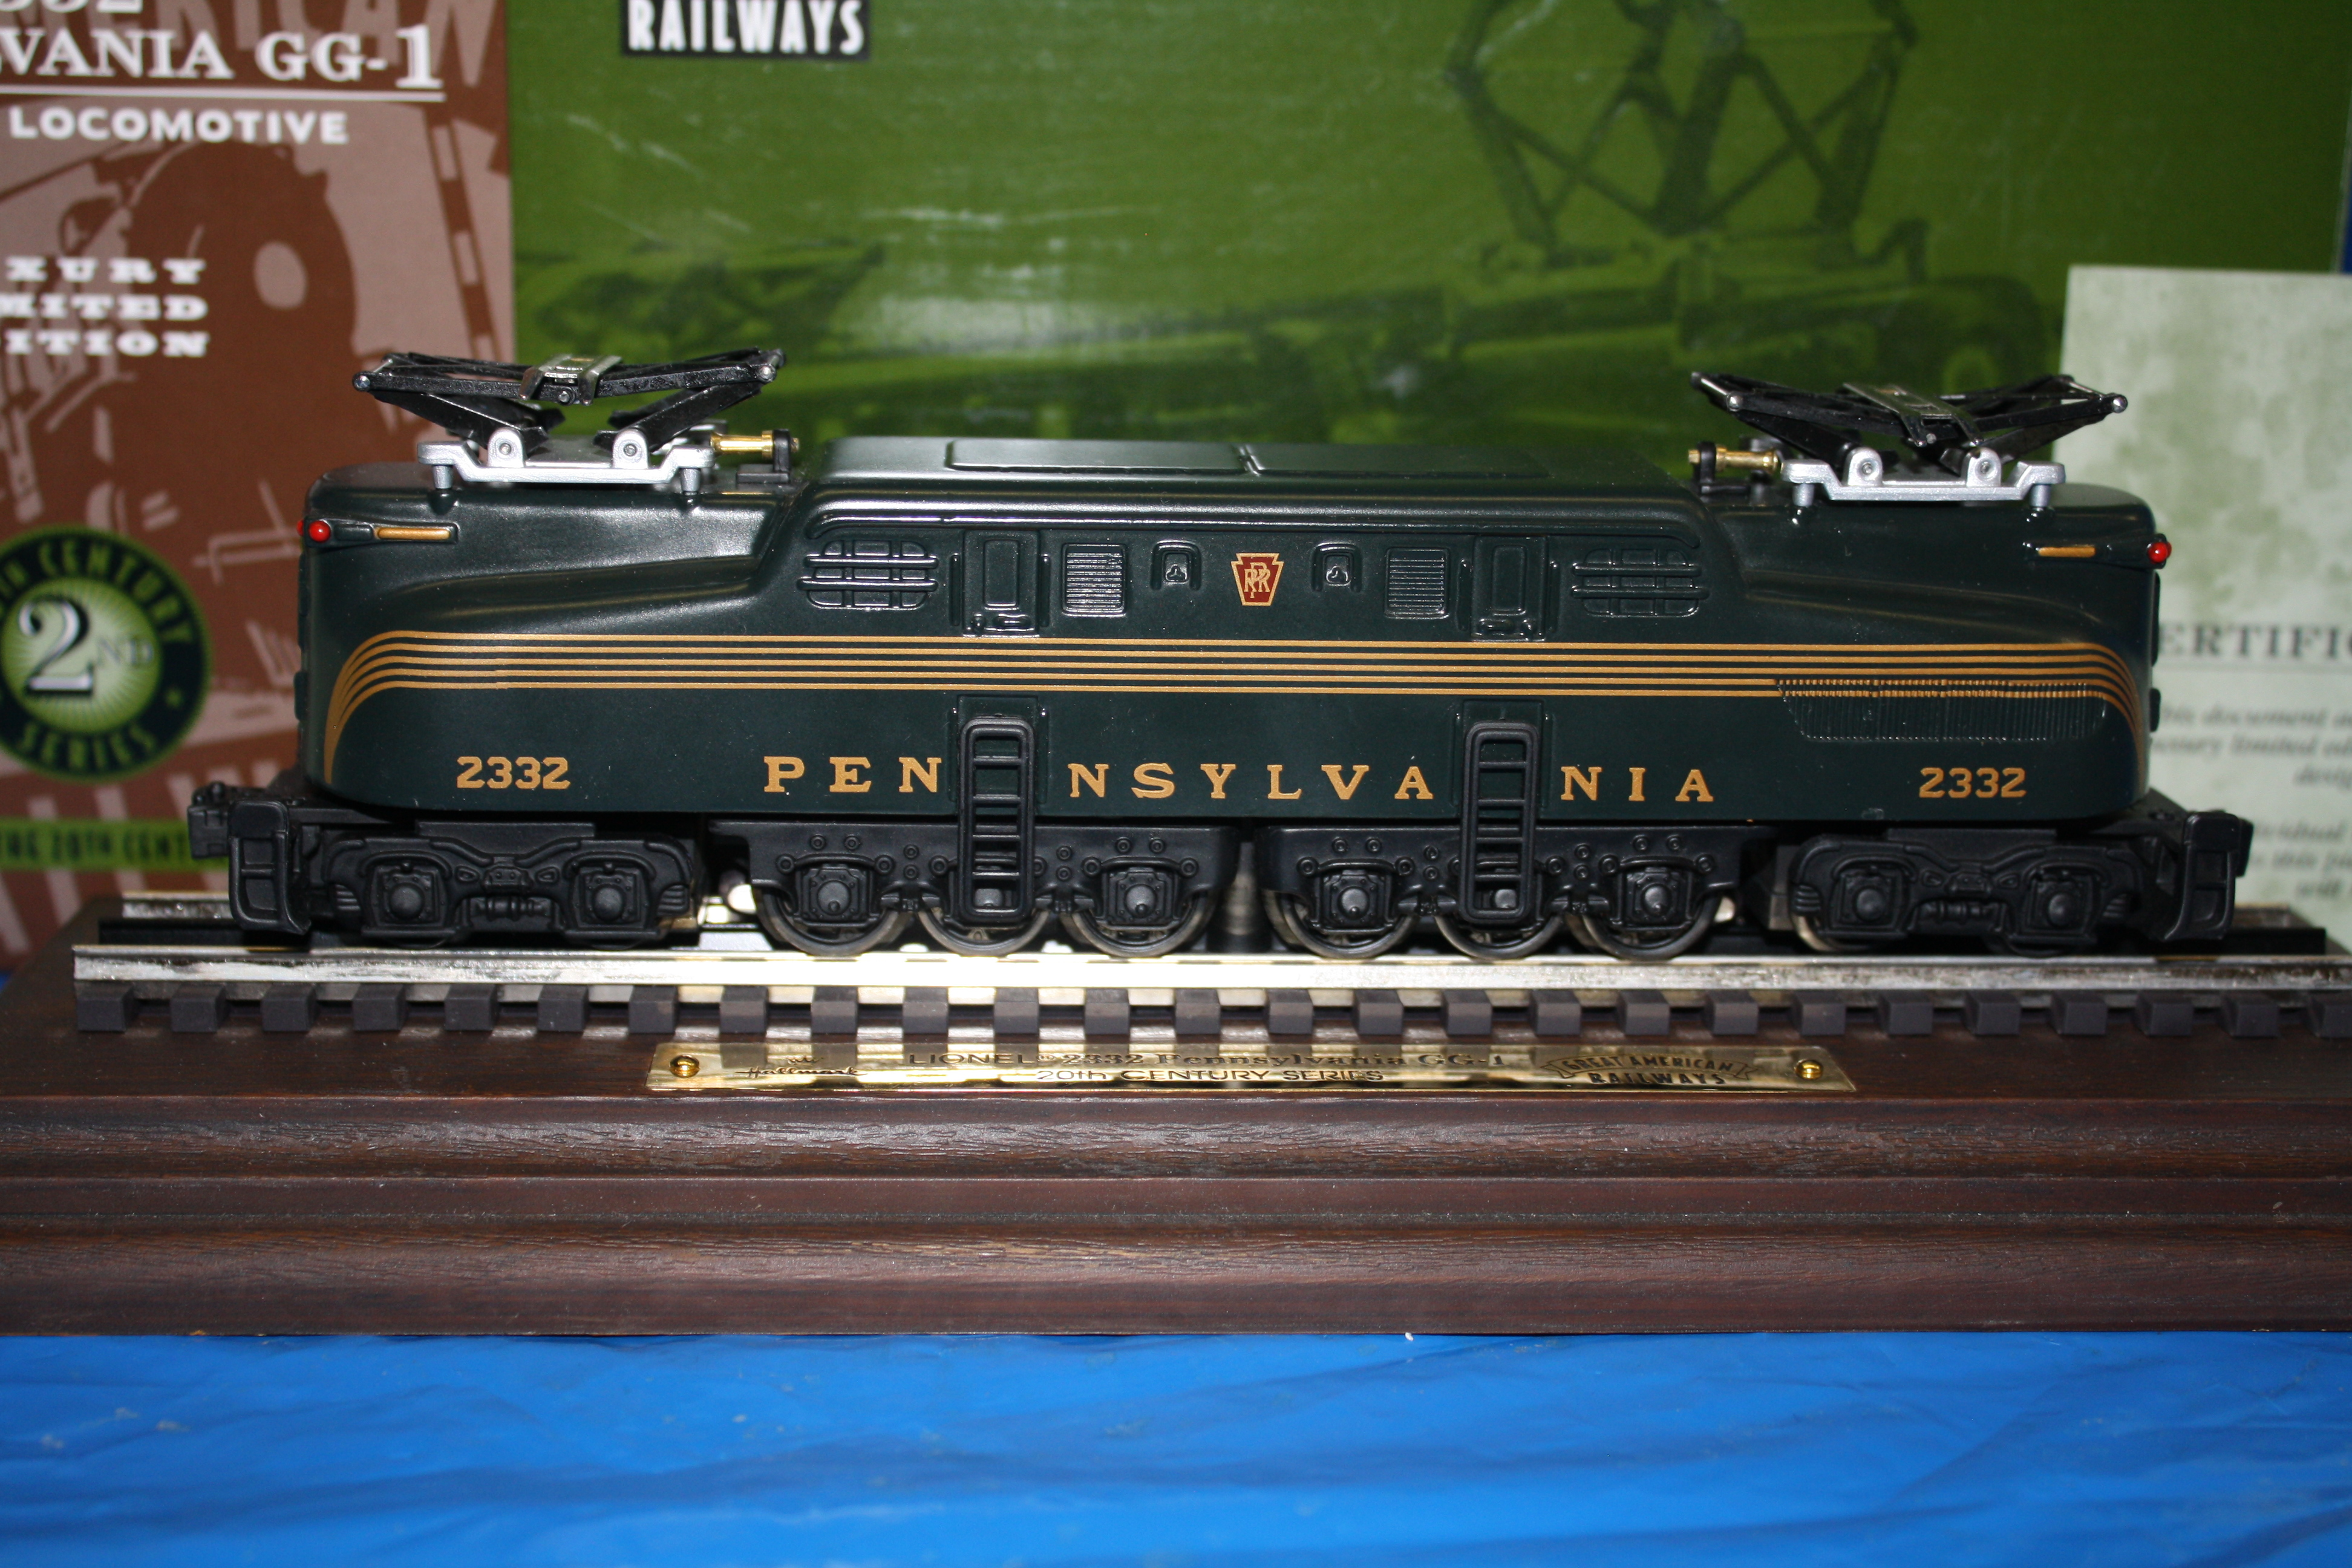 Hallmark Lionel 2332 Pennsylvania GG-1 Electric Locomotive QHT7804